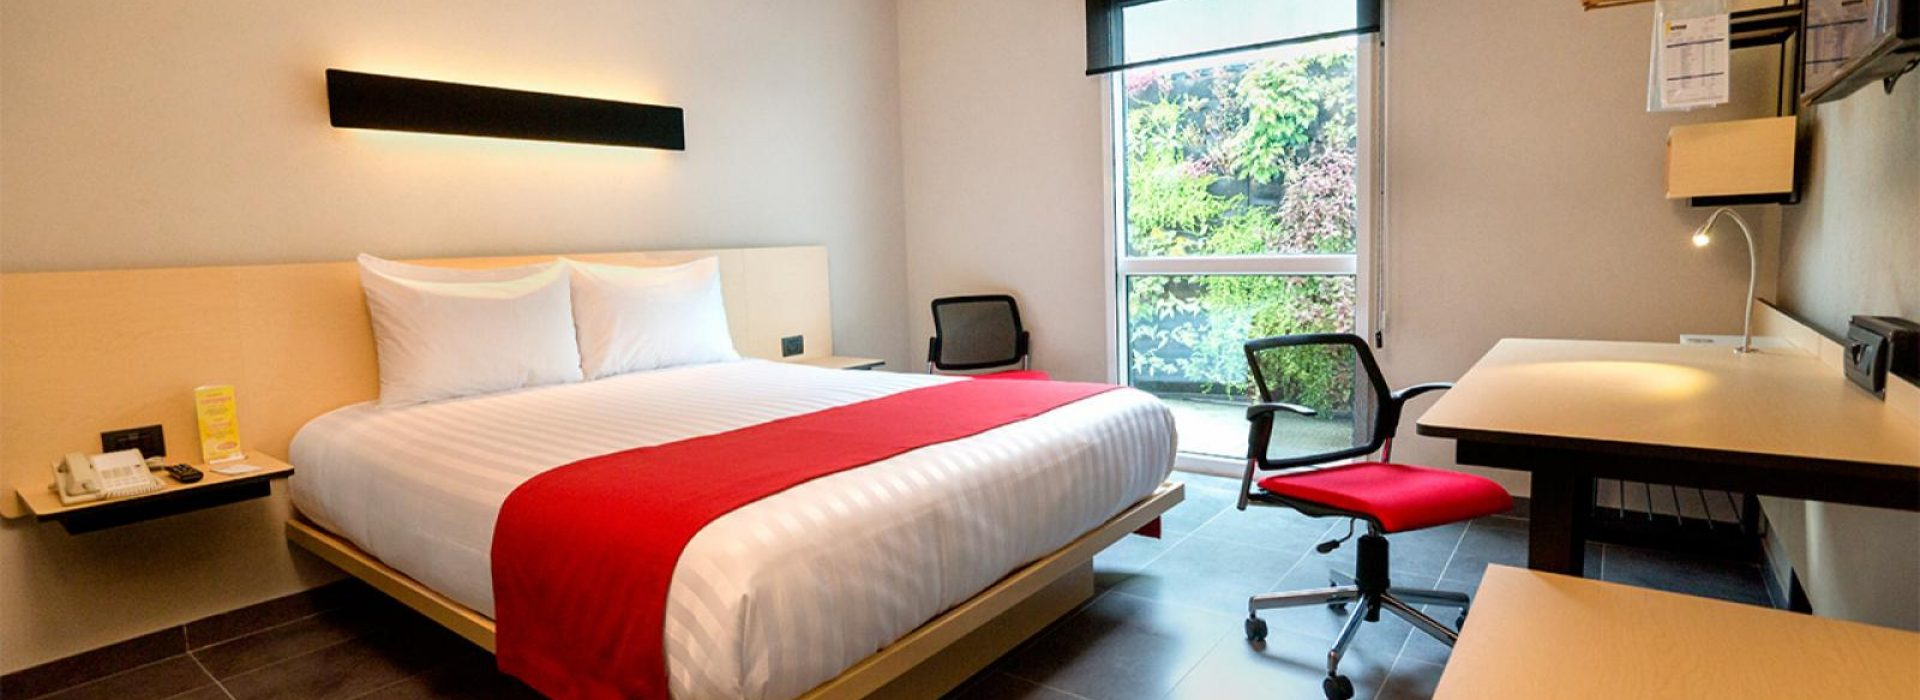 hotel-cali-colombia-city-express-plus-habitacion-sencilla